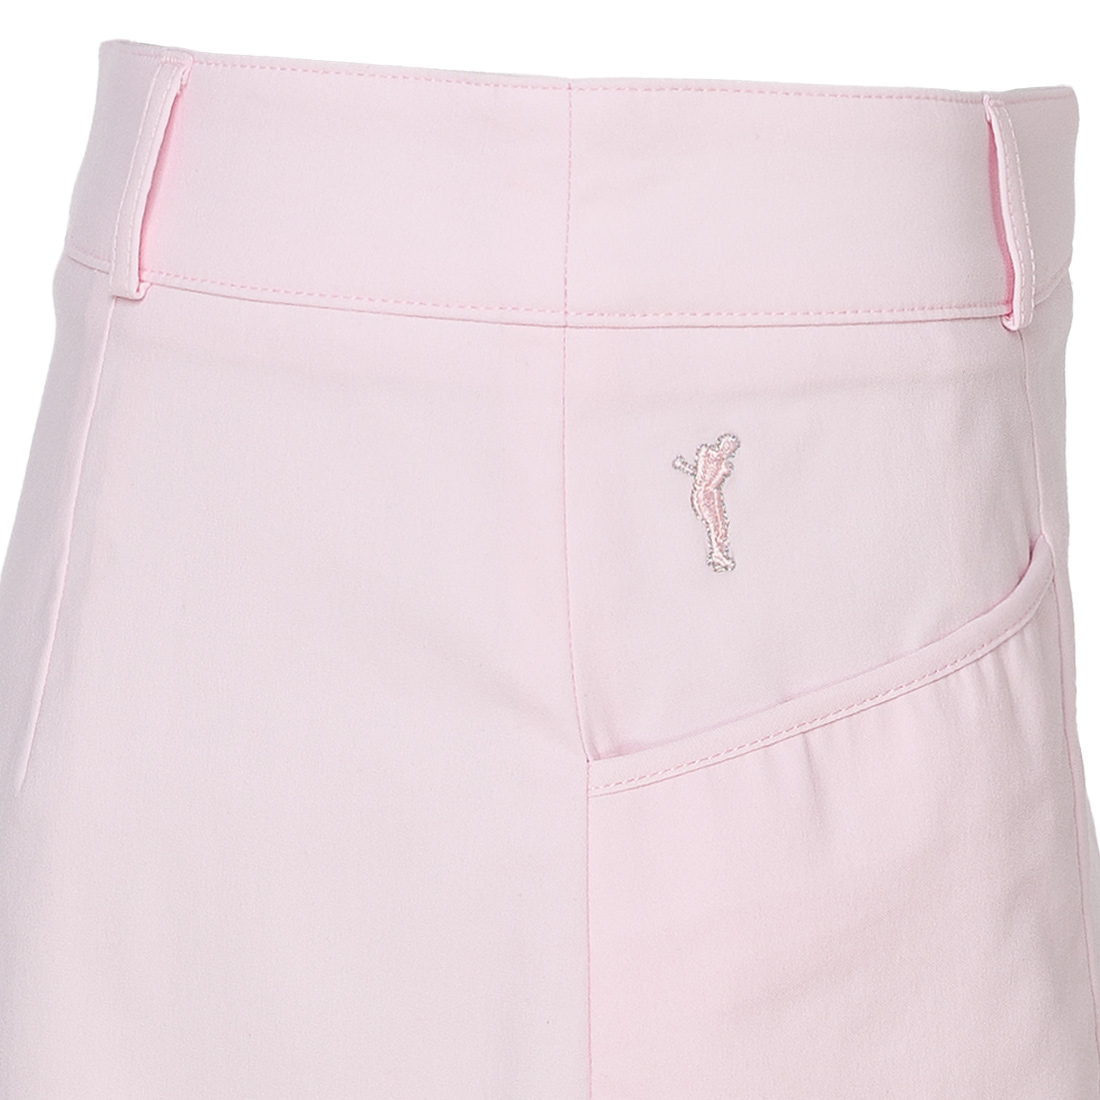 Damen Skort in Stretchqualität